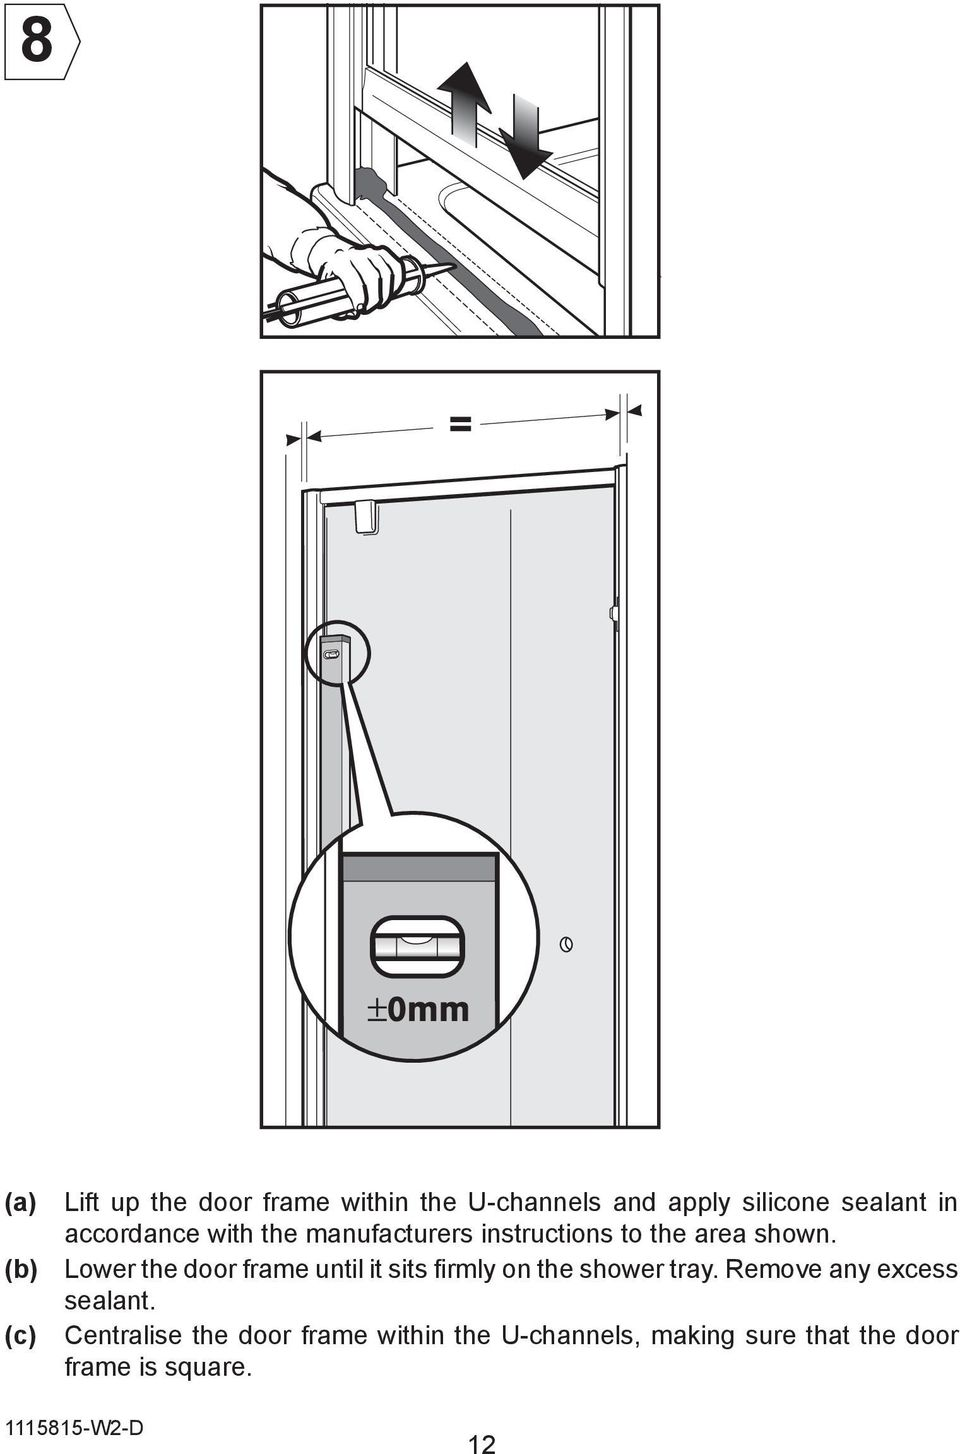 (b) Lower the door frame until it sits firmly on the shower tray.